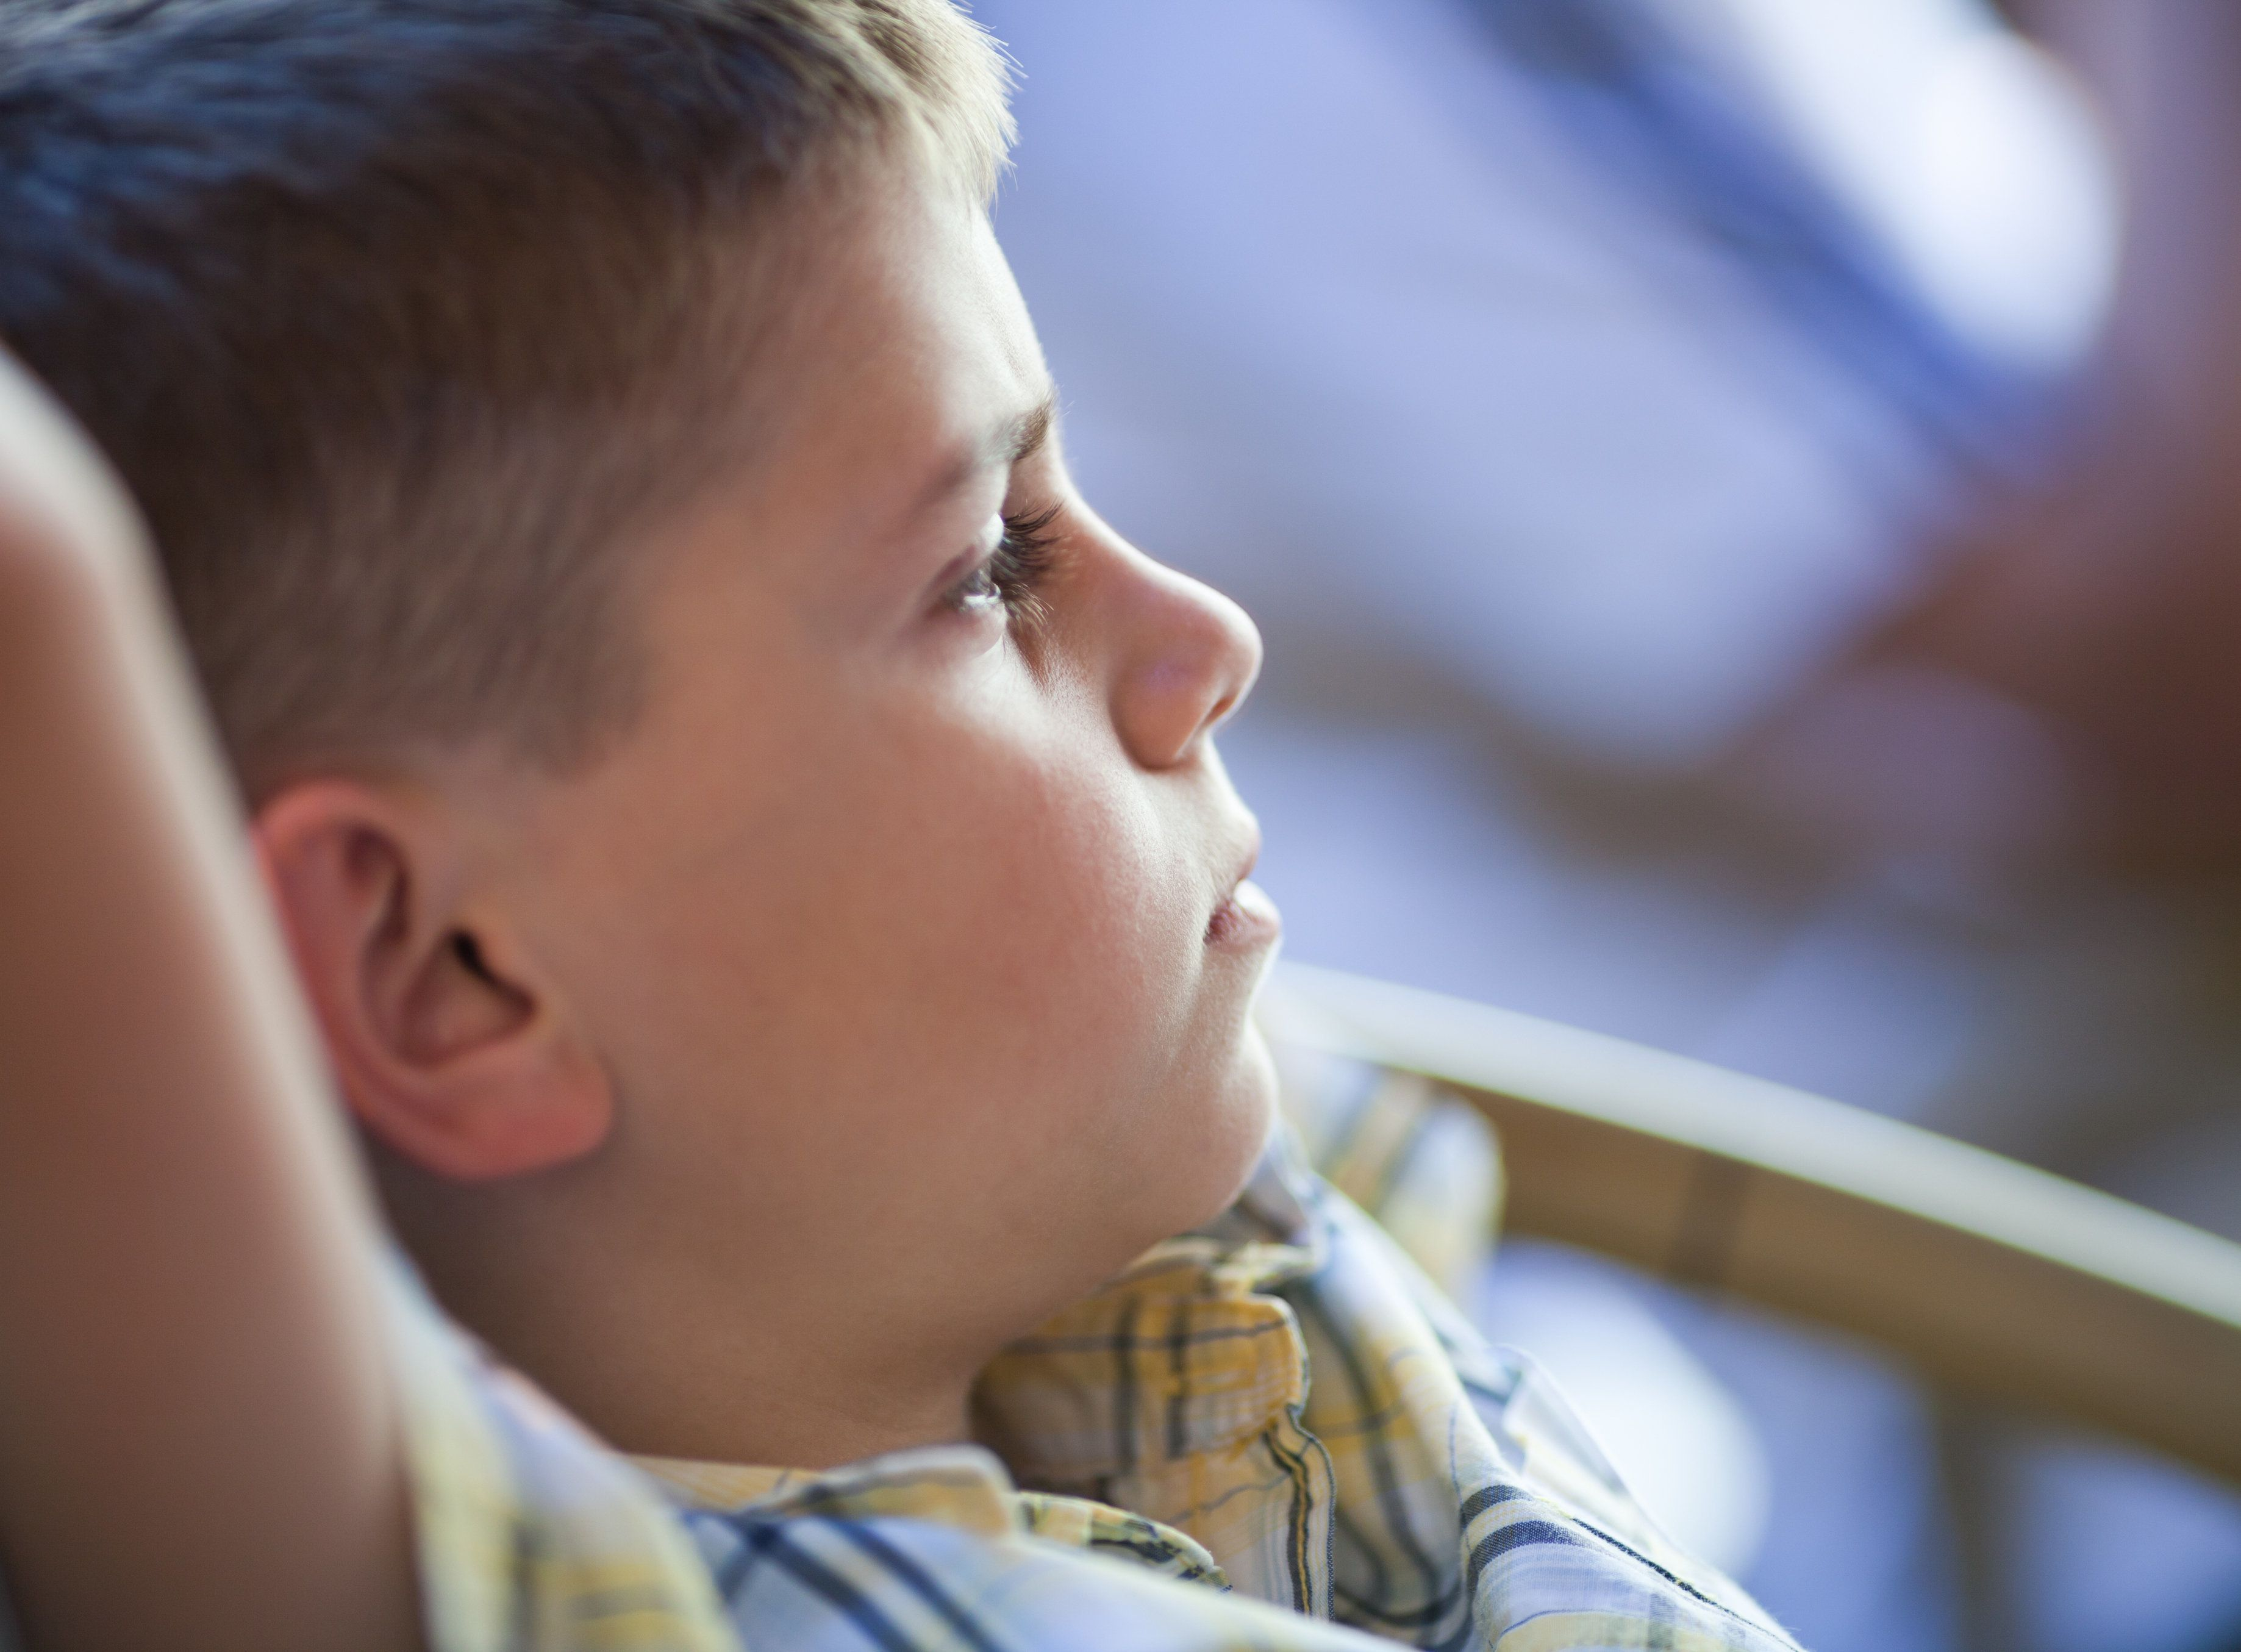 Children Are Being Refused NHS Mental Health Treatment Recommended By Their GPs, Figures